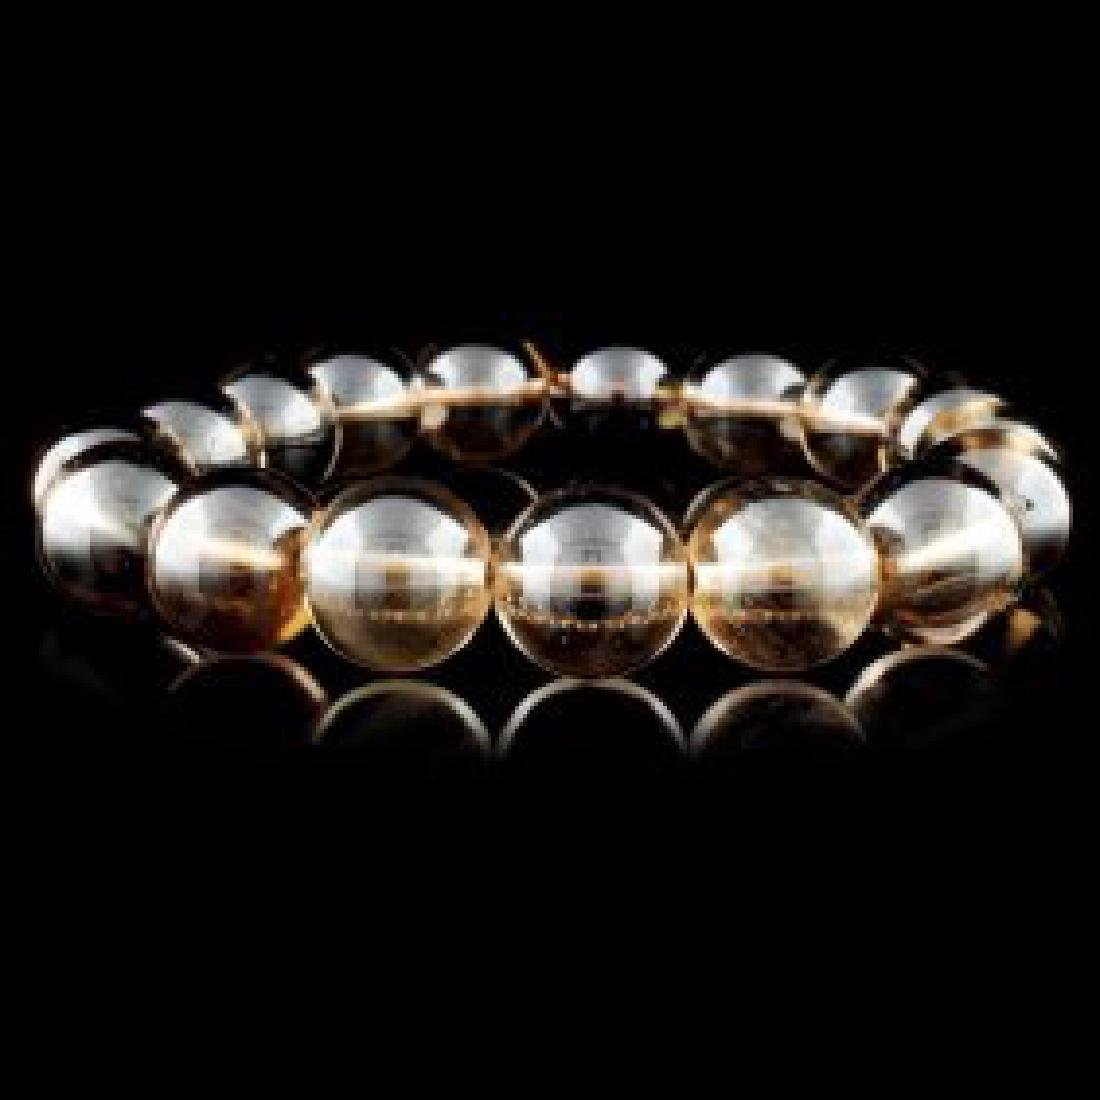 Chinese Natural Crystal Bead Bracelet